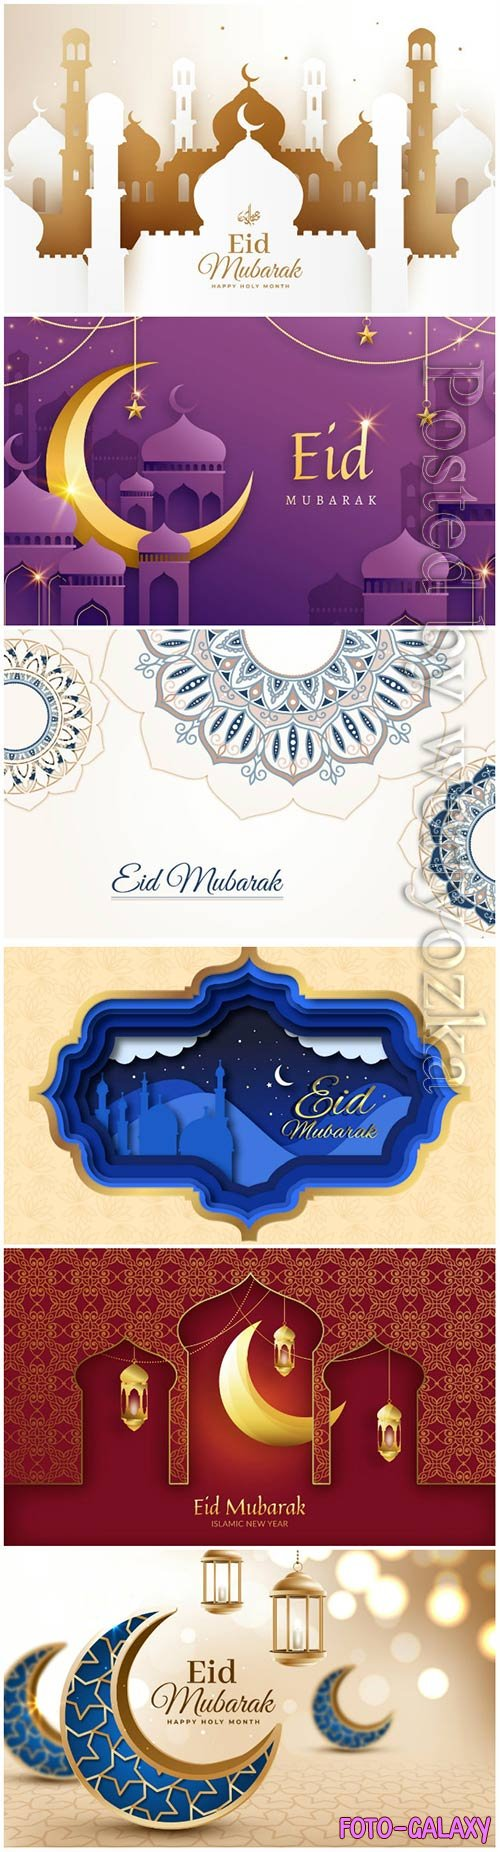 Happy eid mubarak vector design background # 3